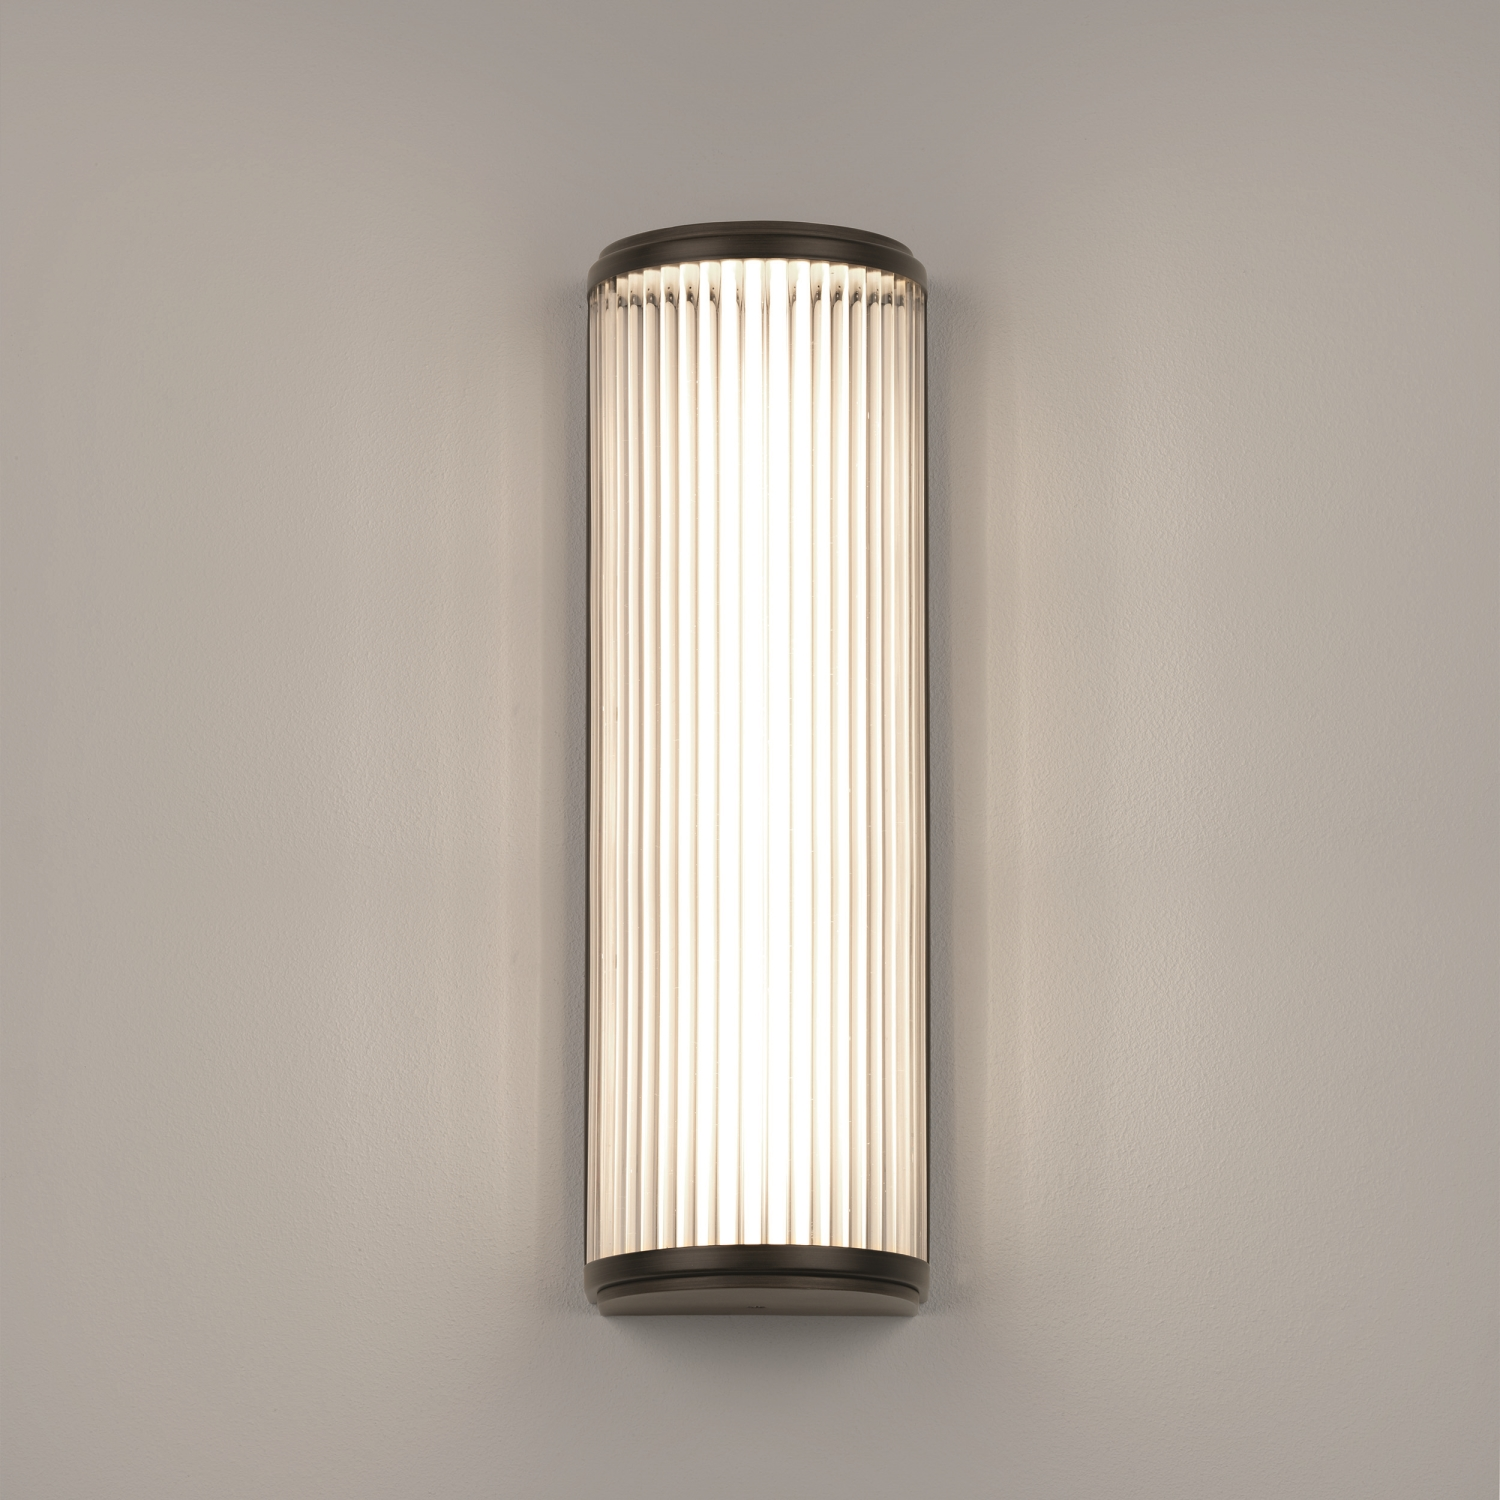 ASTRO VERSAILLES 400 6.4W LED bathroom wall mirror light bronze effect glass